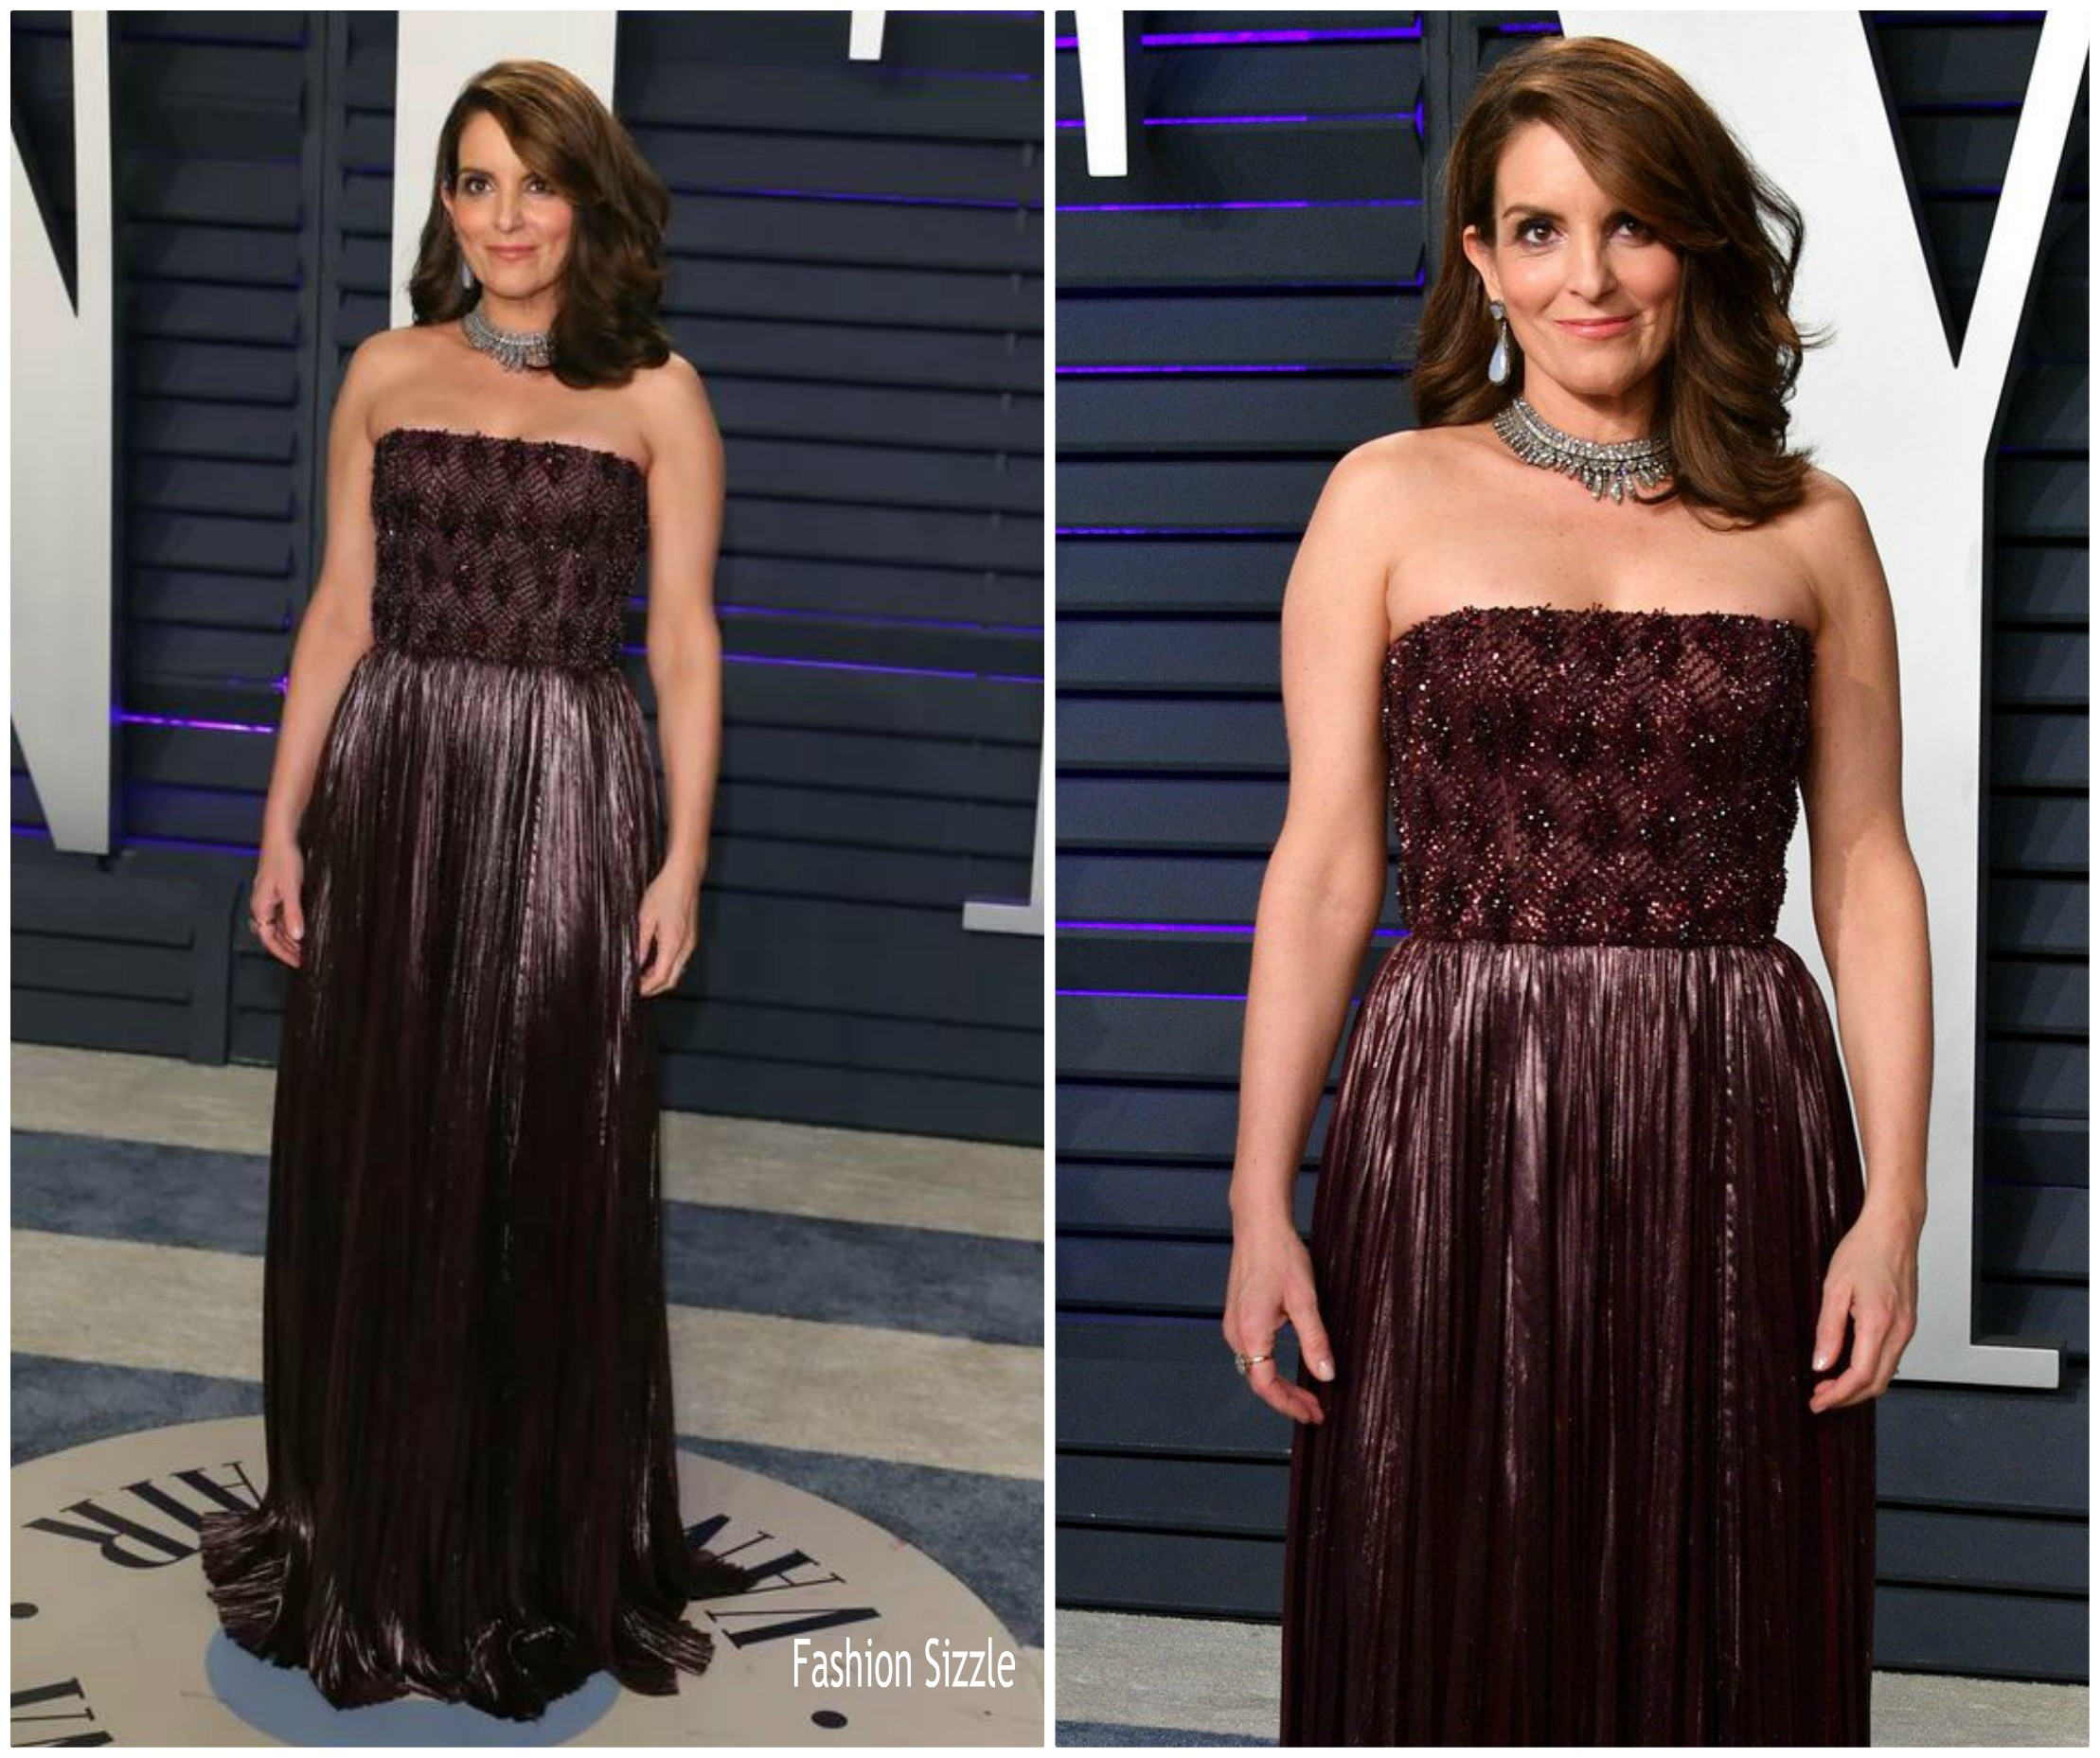 tina-fey-in-j-mendel-2019-vanity-fair-oscar-party